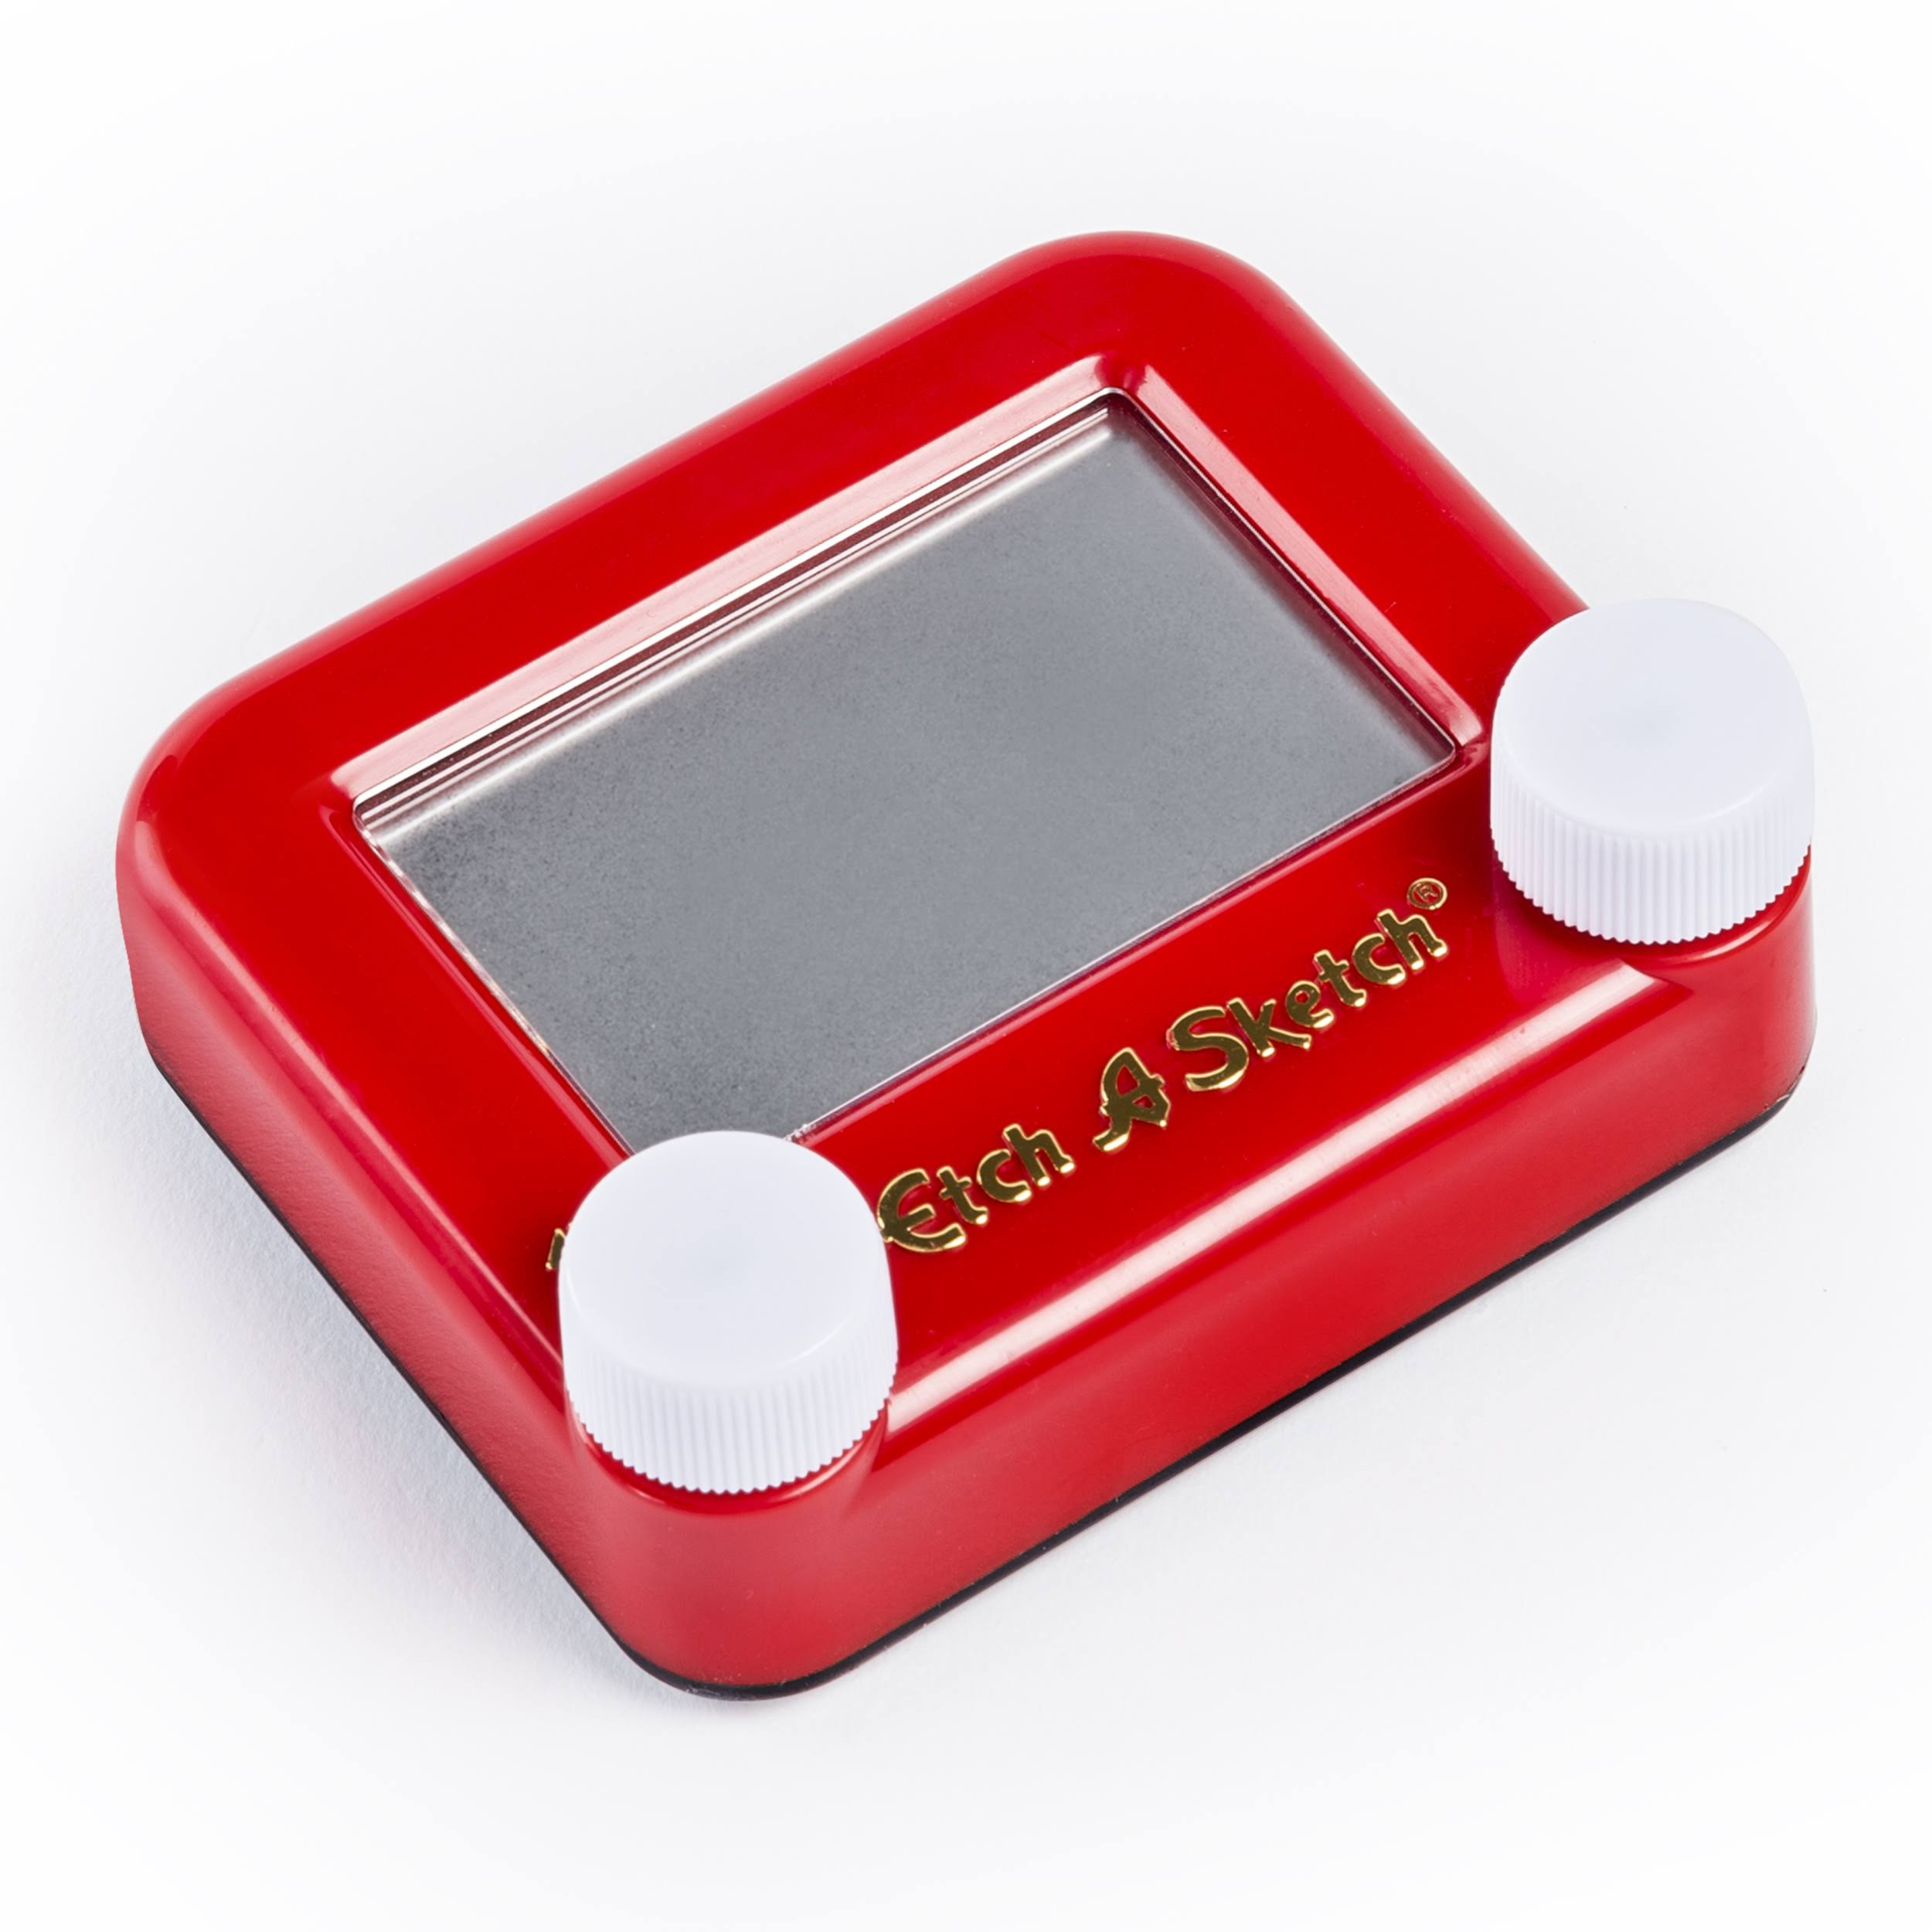 Pocket Etch A Sketch - Red